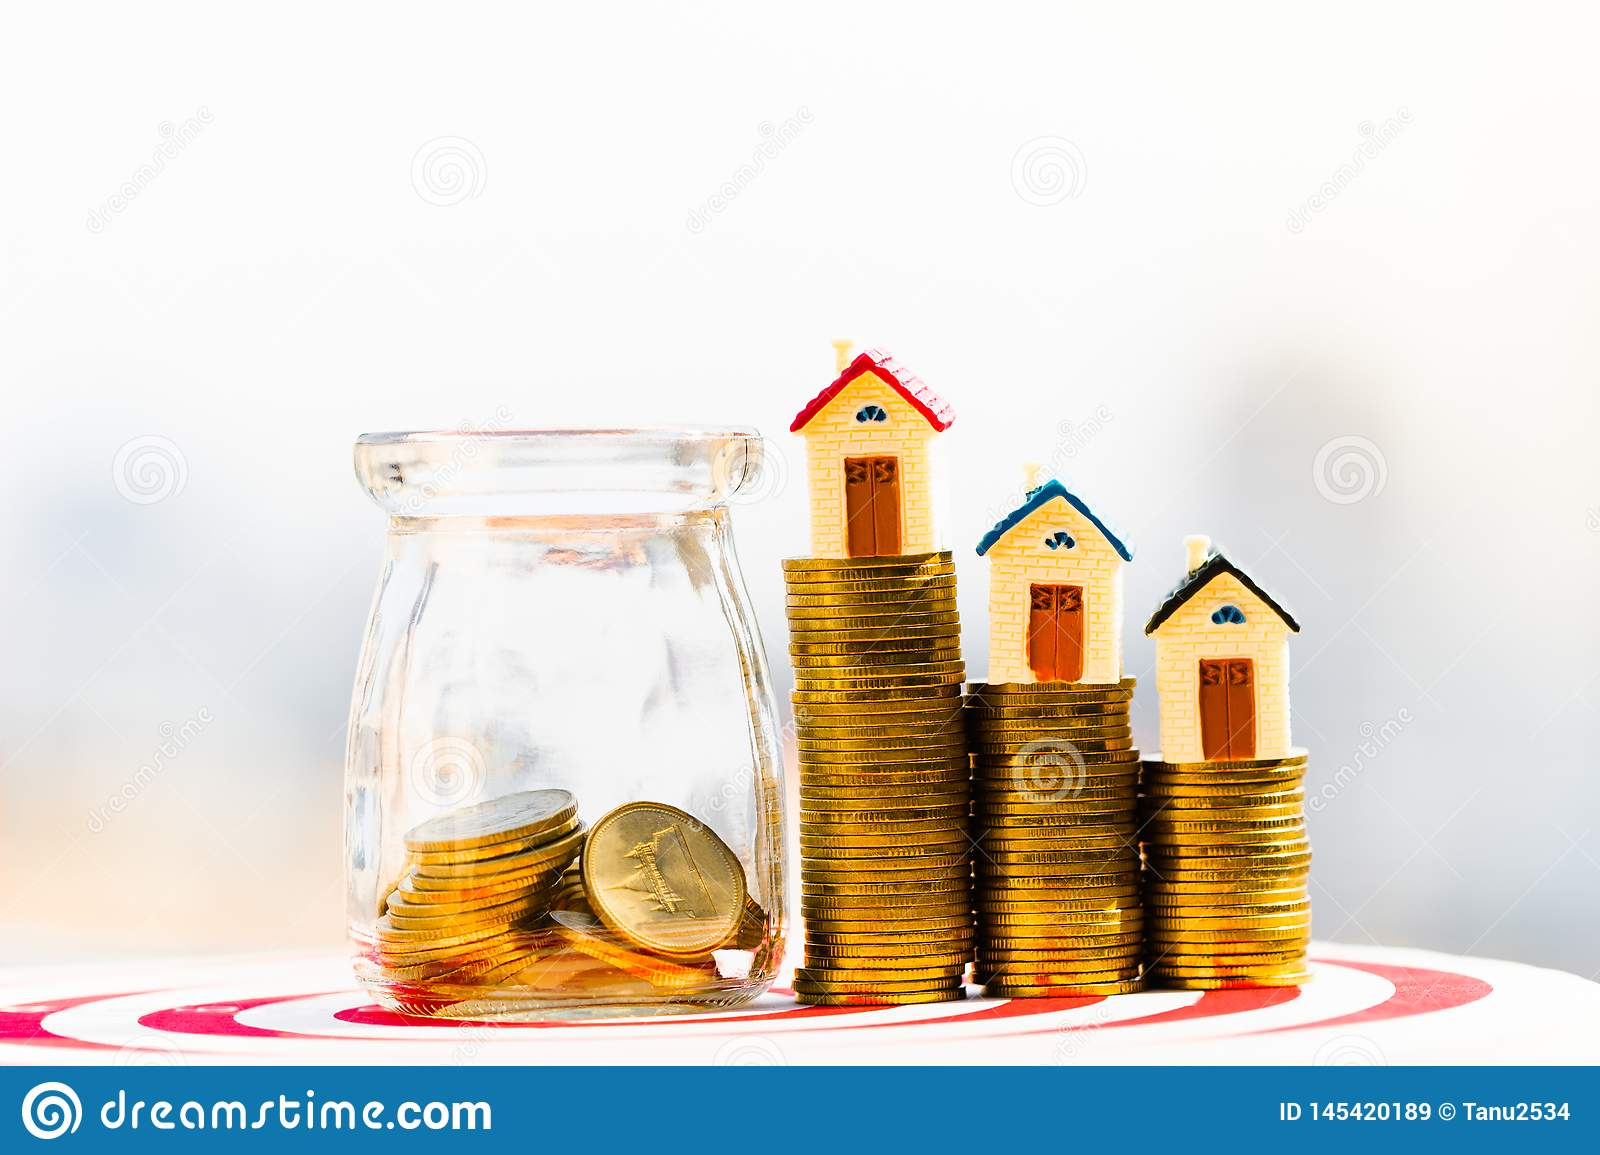 House model on coins stack. planning savings money of coins to buy a home concept.